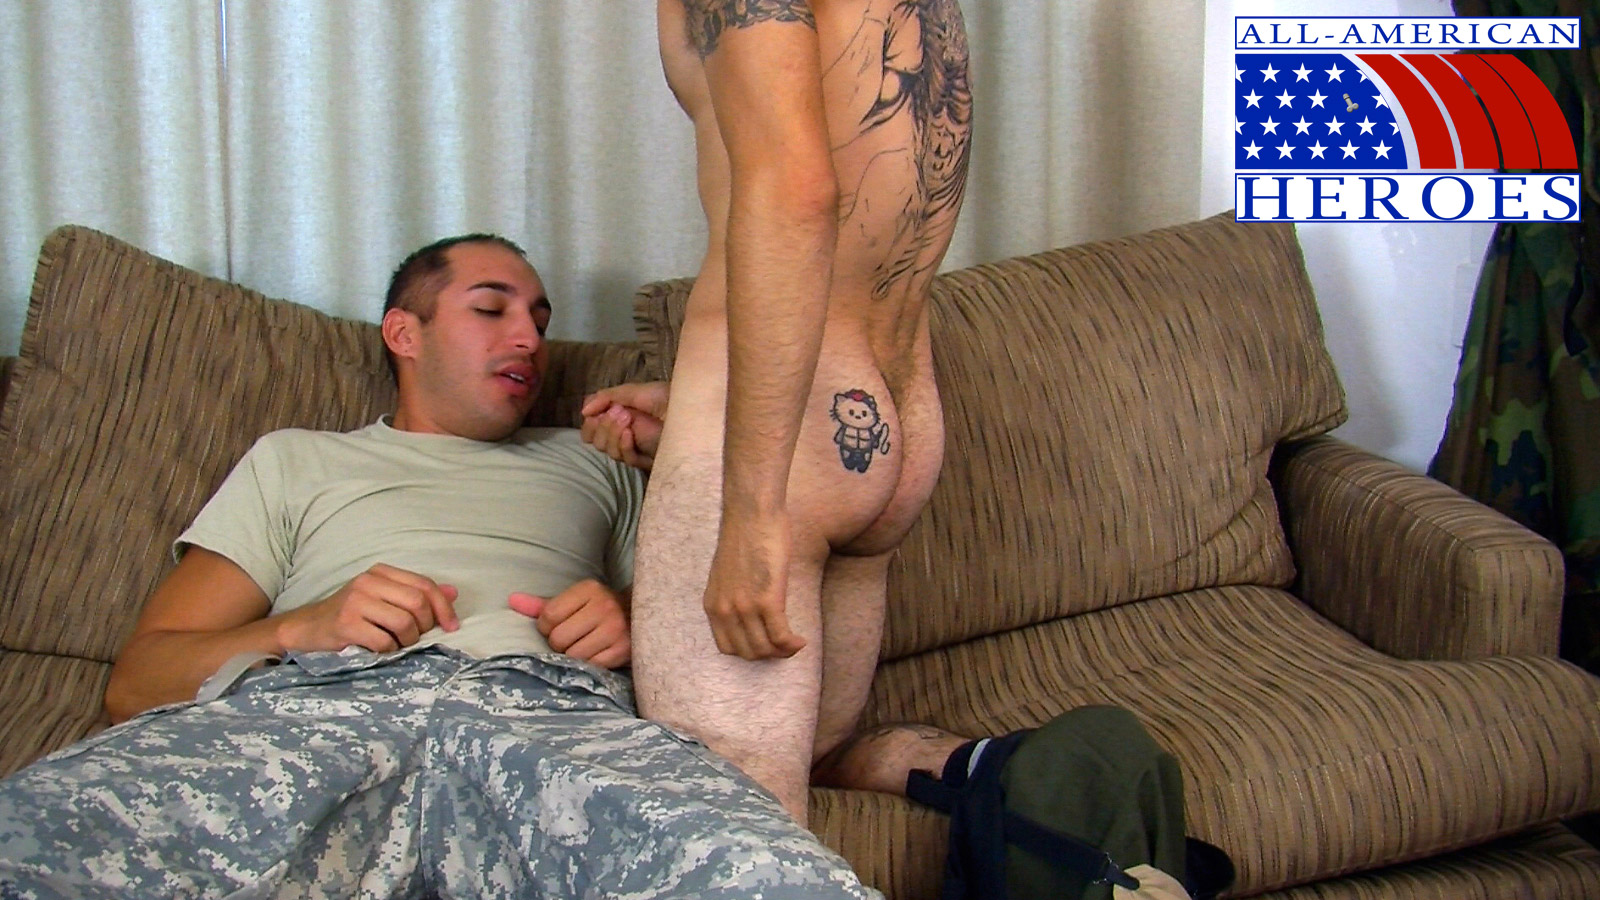 All American Heroes LANCE CORPORAL MORGIES FIRST GAY BLOWJOB 12 Real Straight Marine Gets His First Blowjob From Another Marine